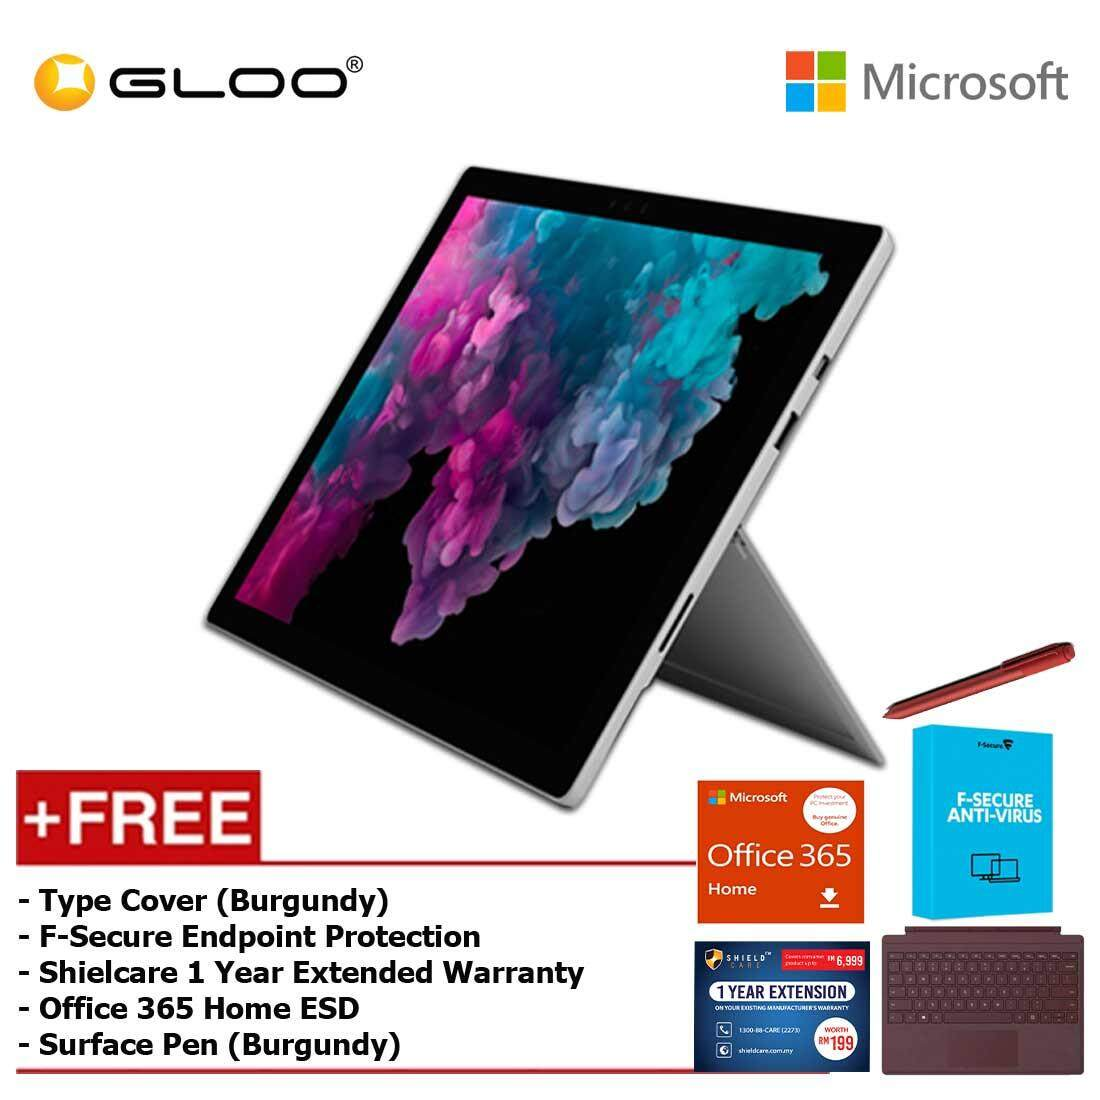 Microsoft Surface Pro 6 Core i5/8GB RAM -128GB + Type Cover Burgundy +  Office 365 Home (ESD) + Pen Burgundy + Fsecure + Shieldcare 1 Year Extended Warranty